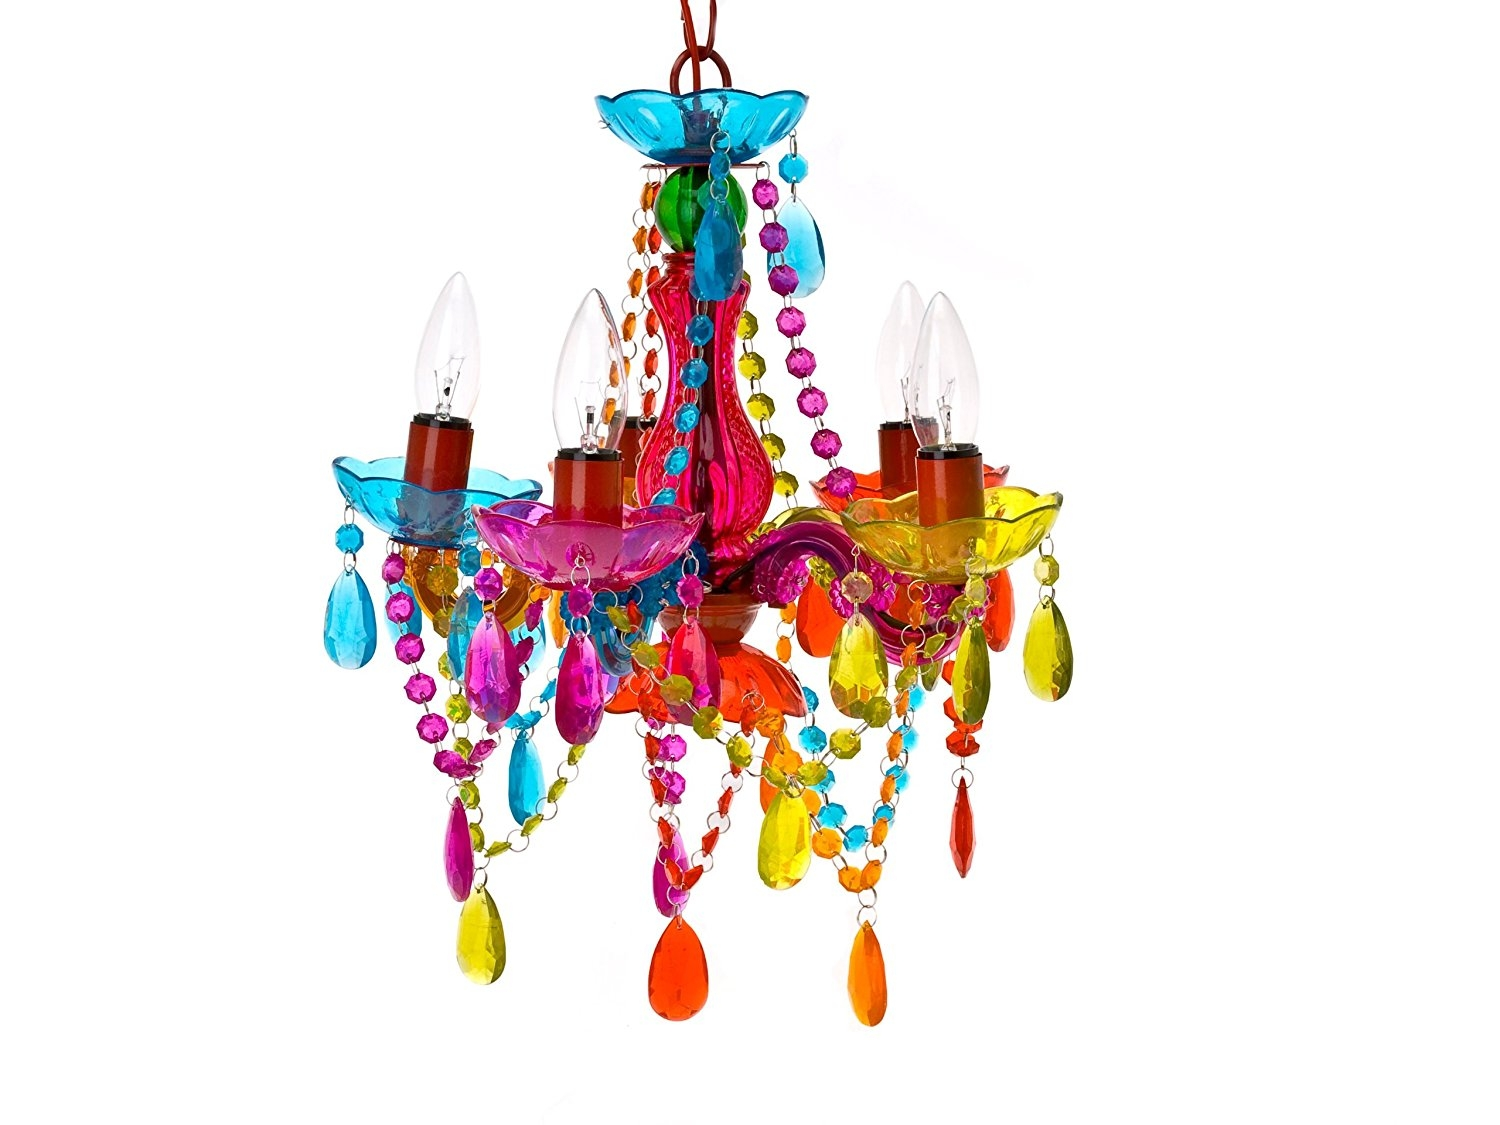 Gypsy Chandelier Pendant Ceiling Light Multi Coloured Small Pertaining To Colourful Chandeliers (#7 of 12)